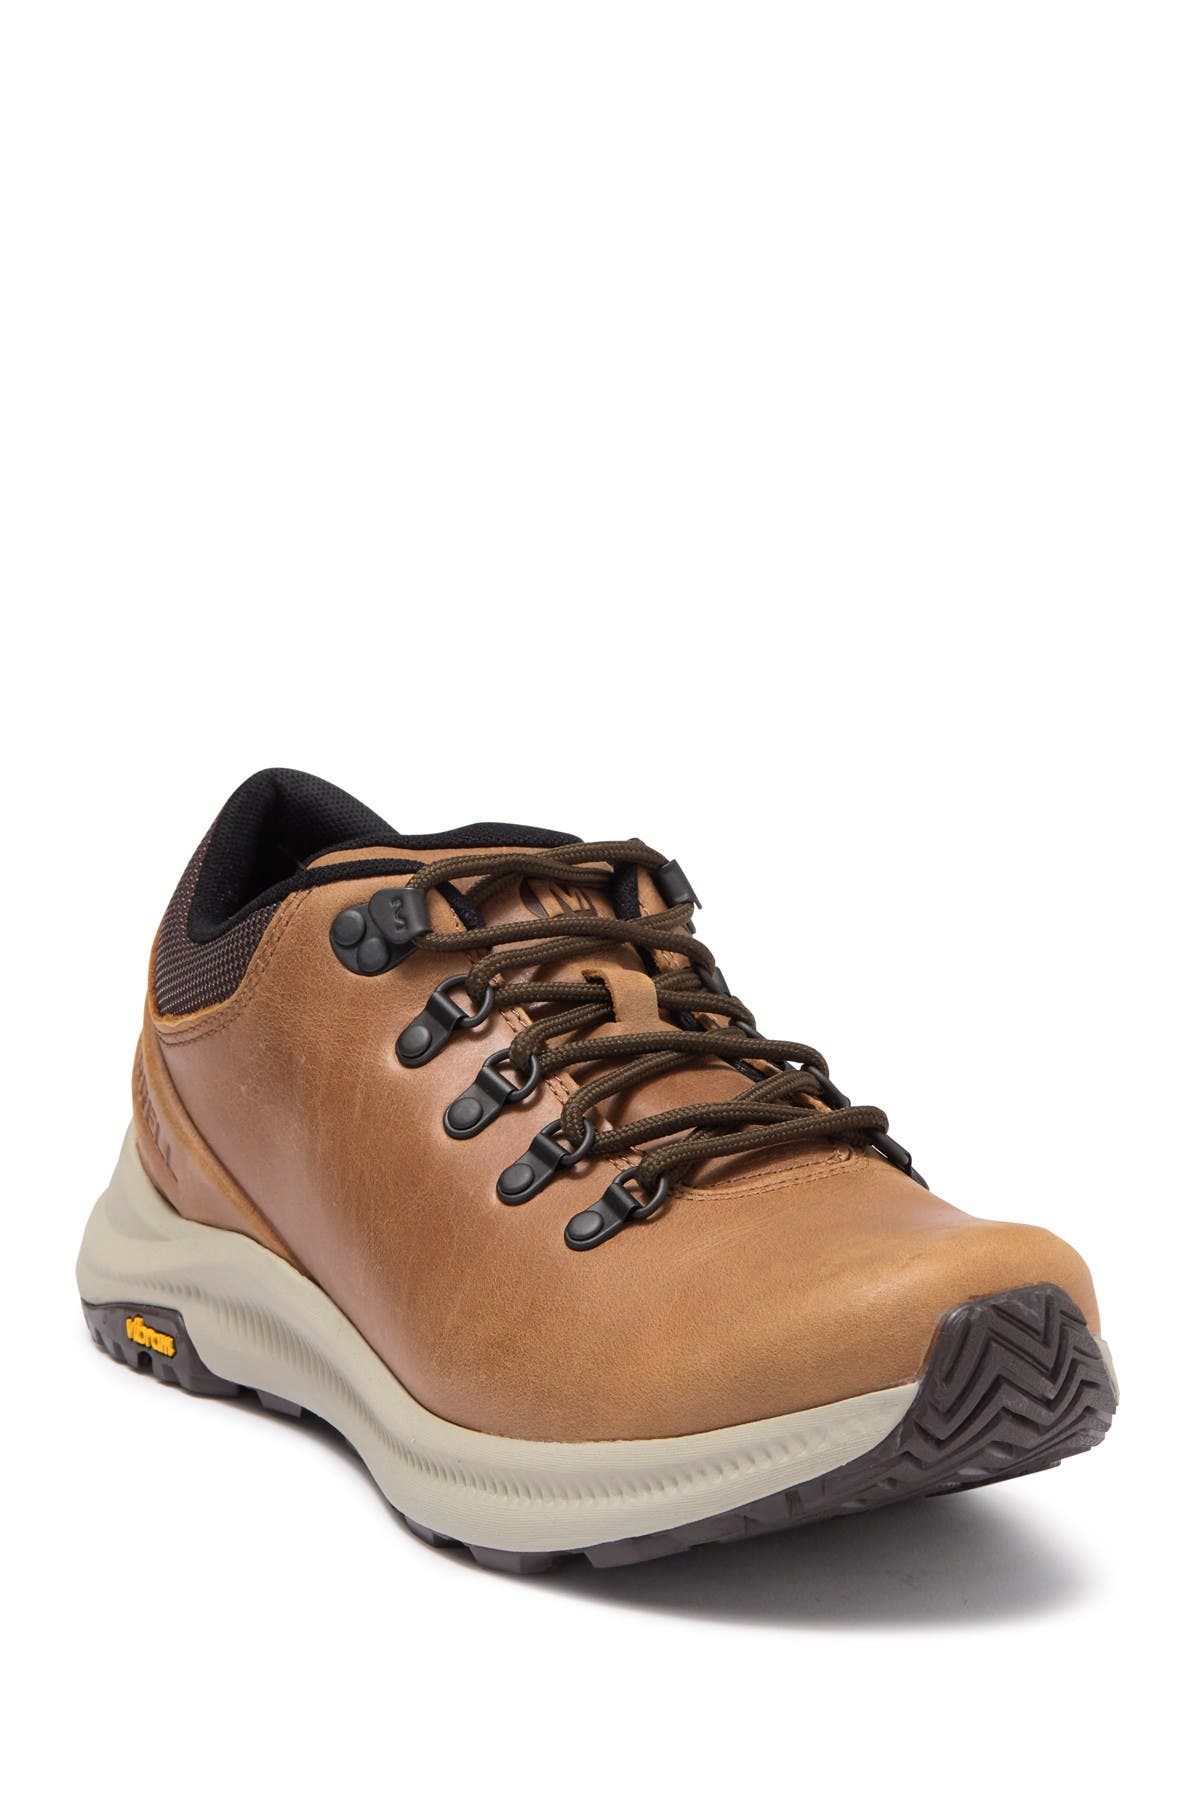 merrell leather sneakers